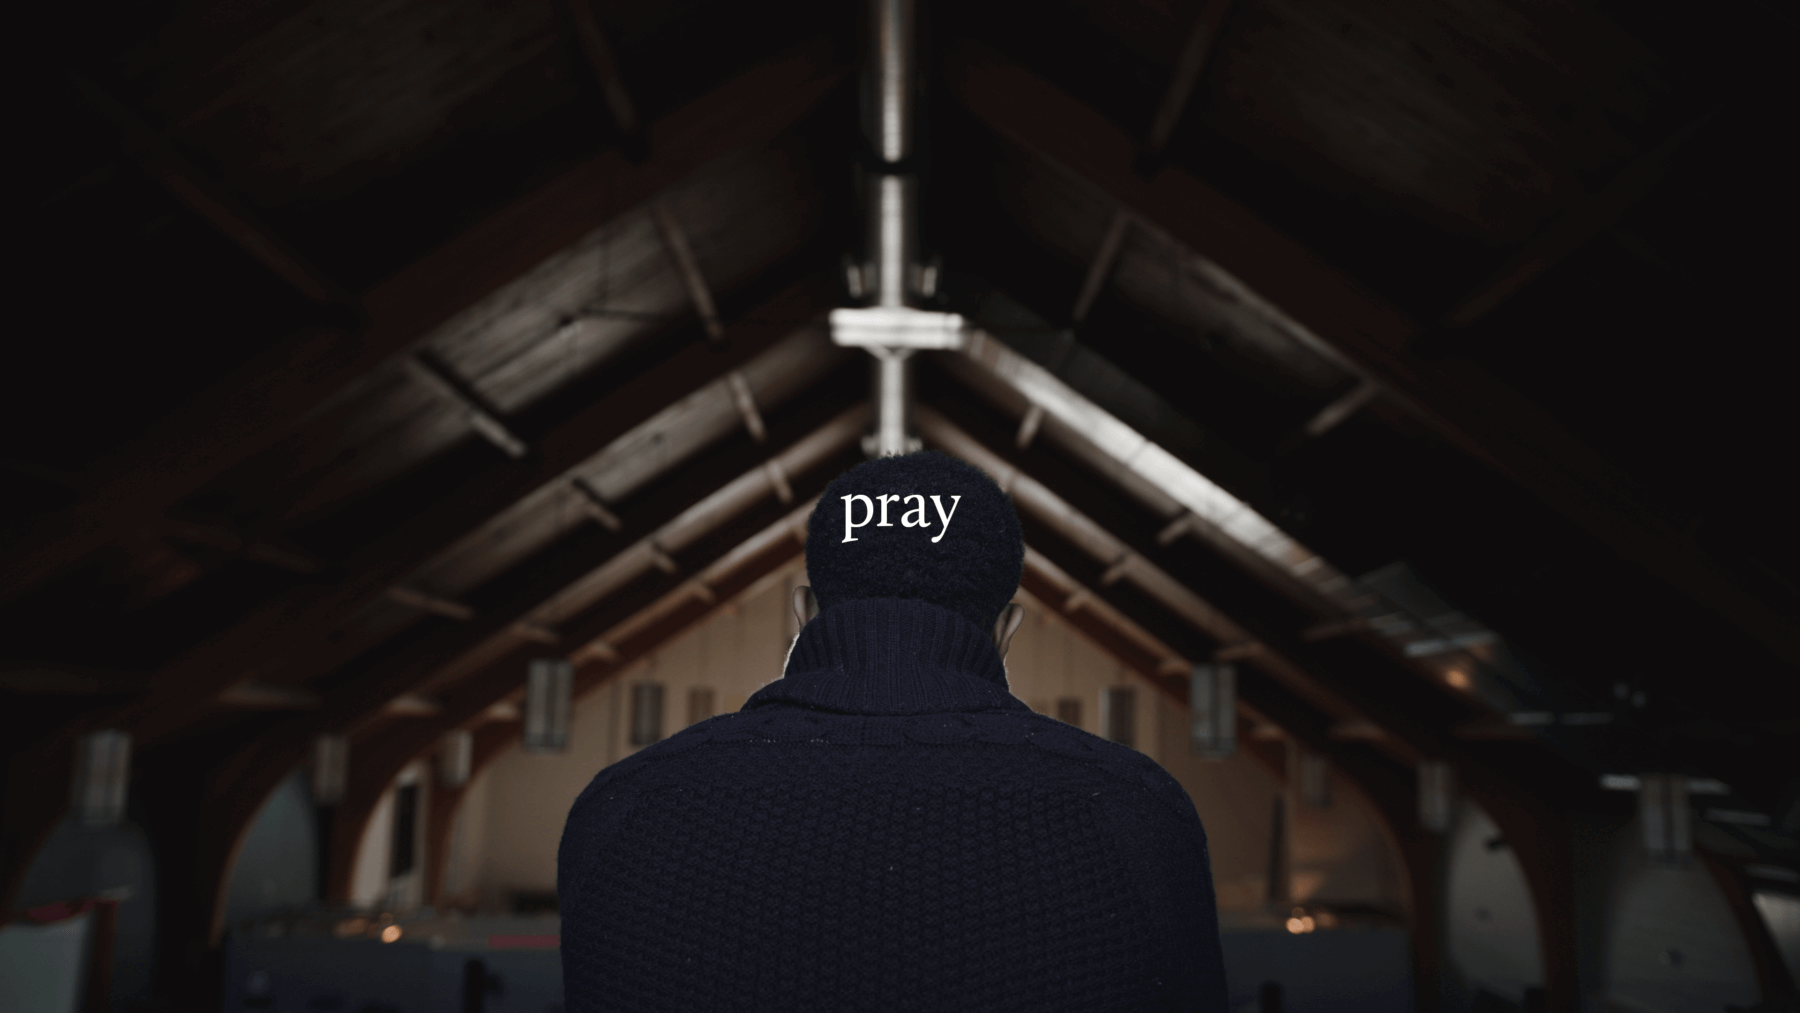 Sermon Series Ideas #3: Pray